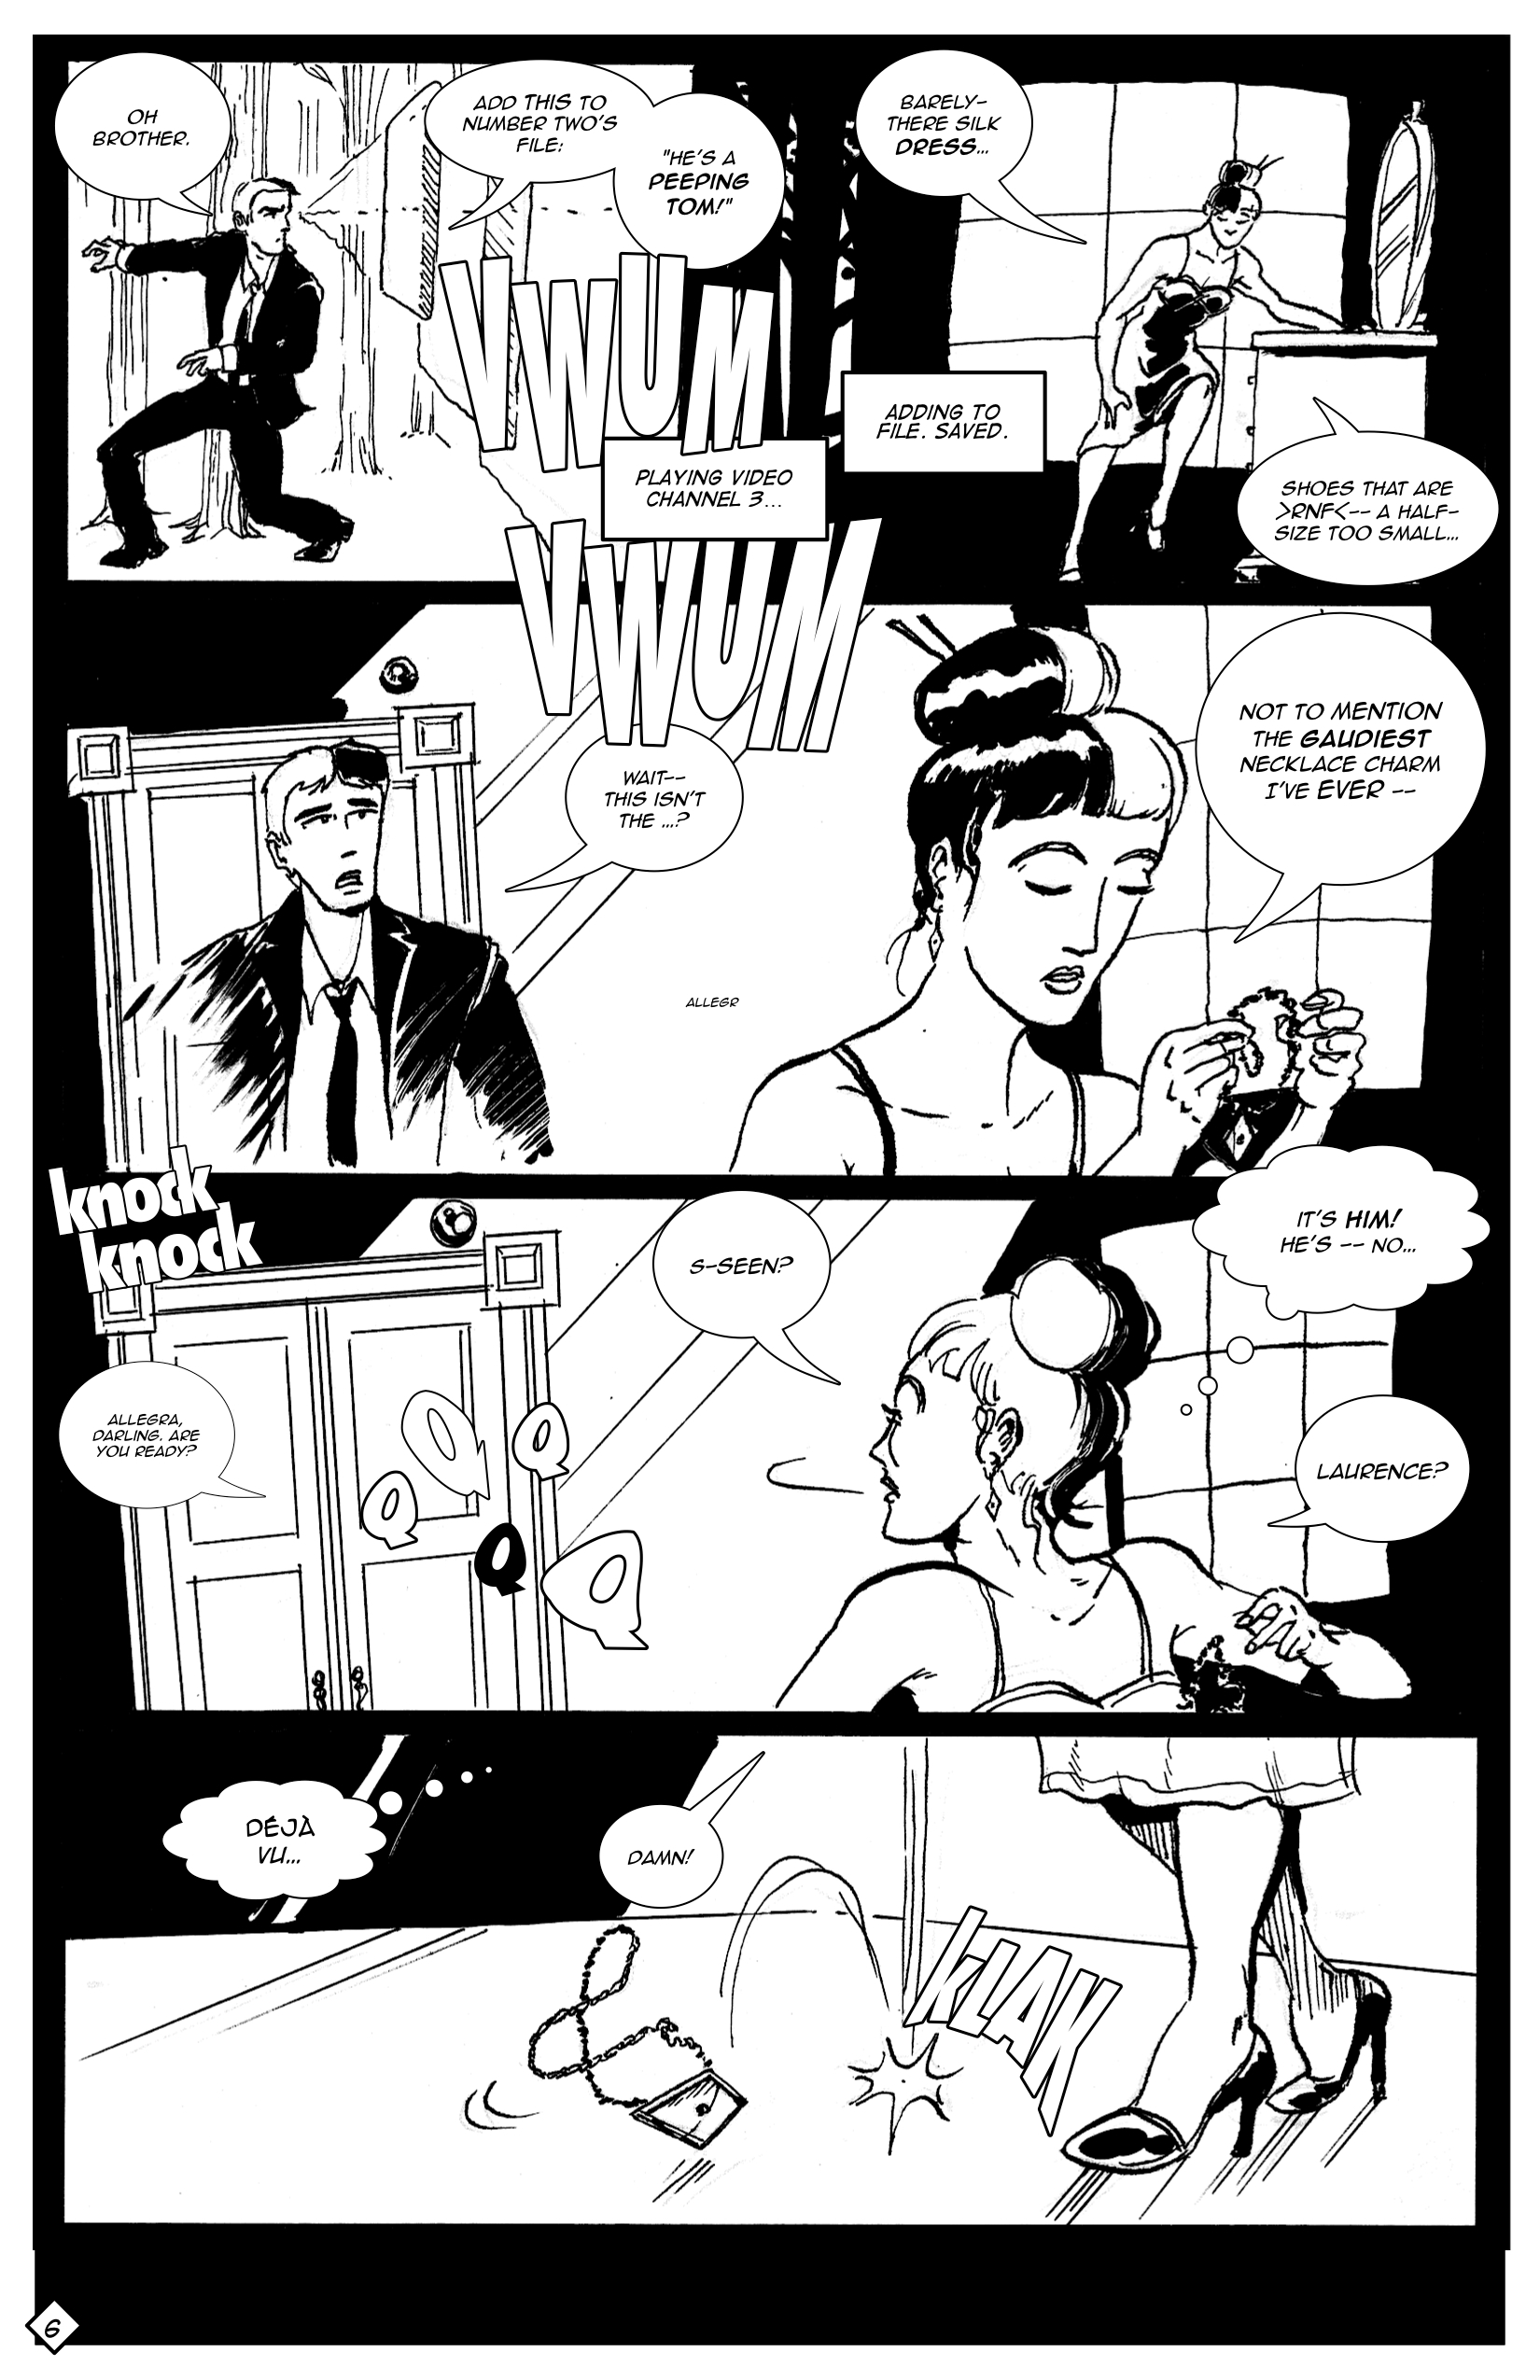 Ch8 Page 6